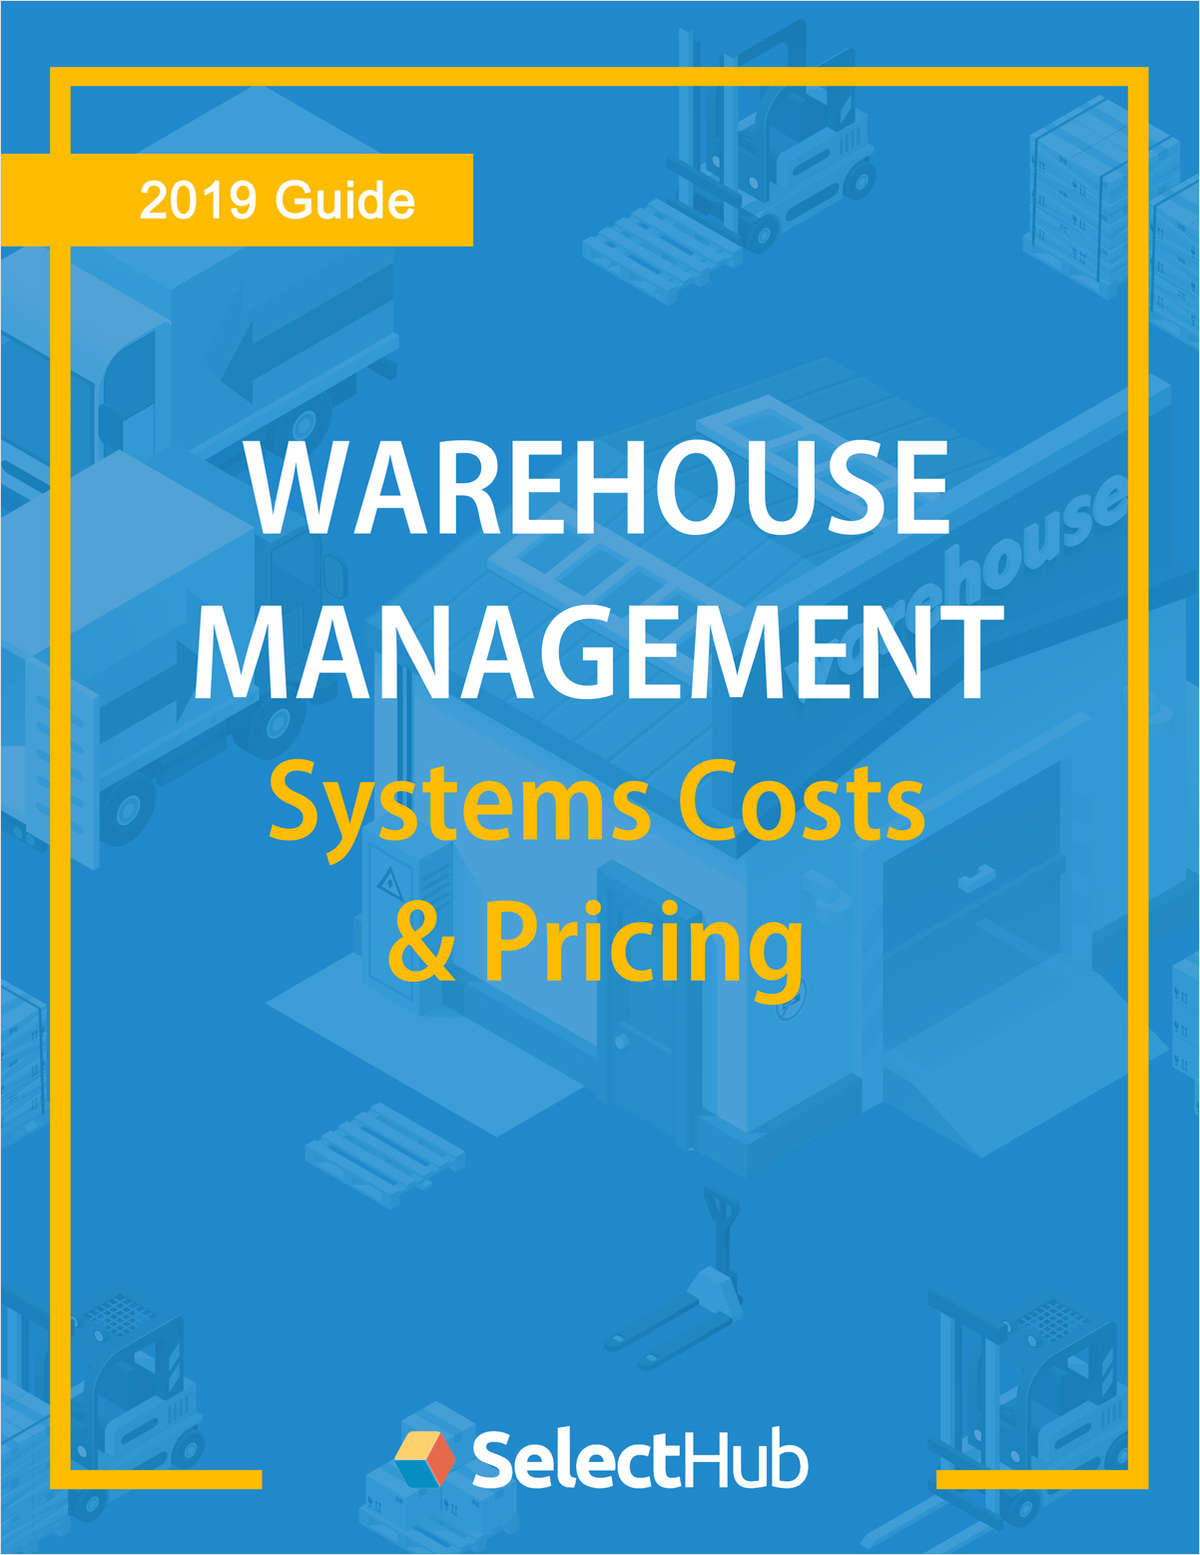 Compare Warehouse Management Systems Costs & Pricing